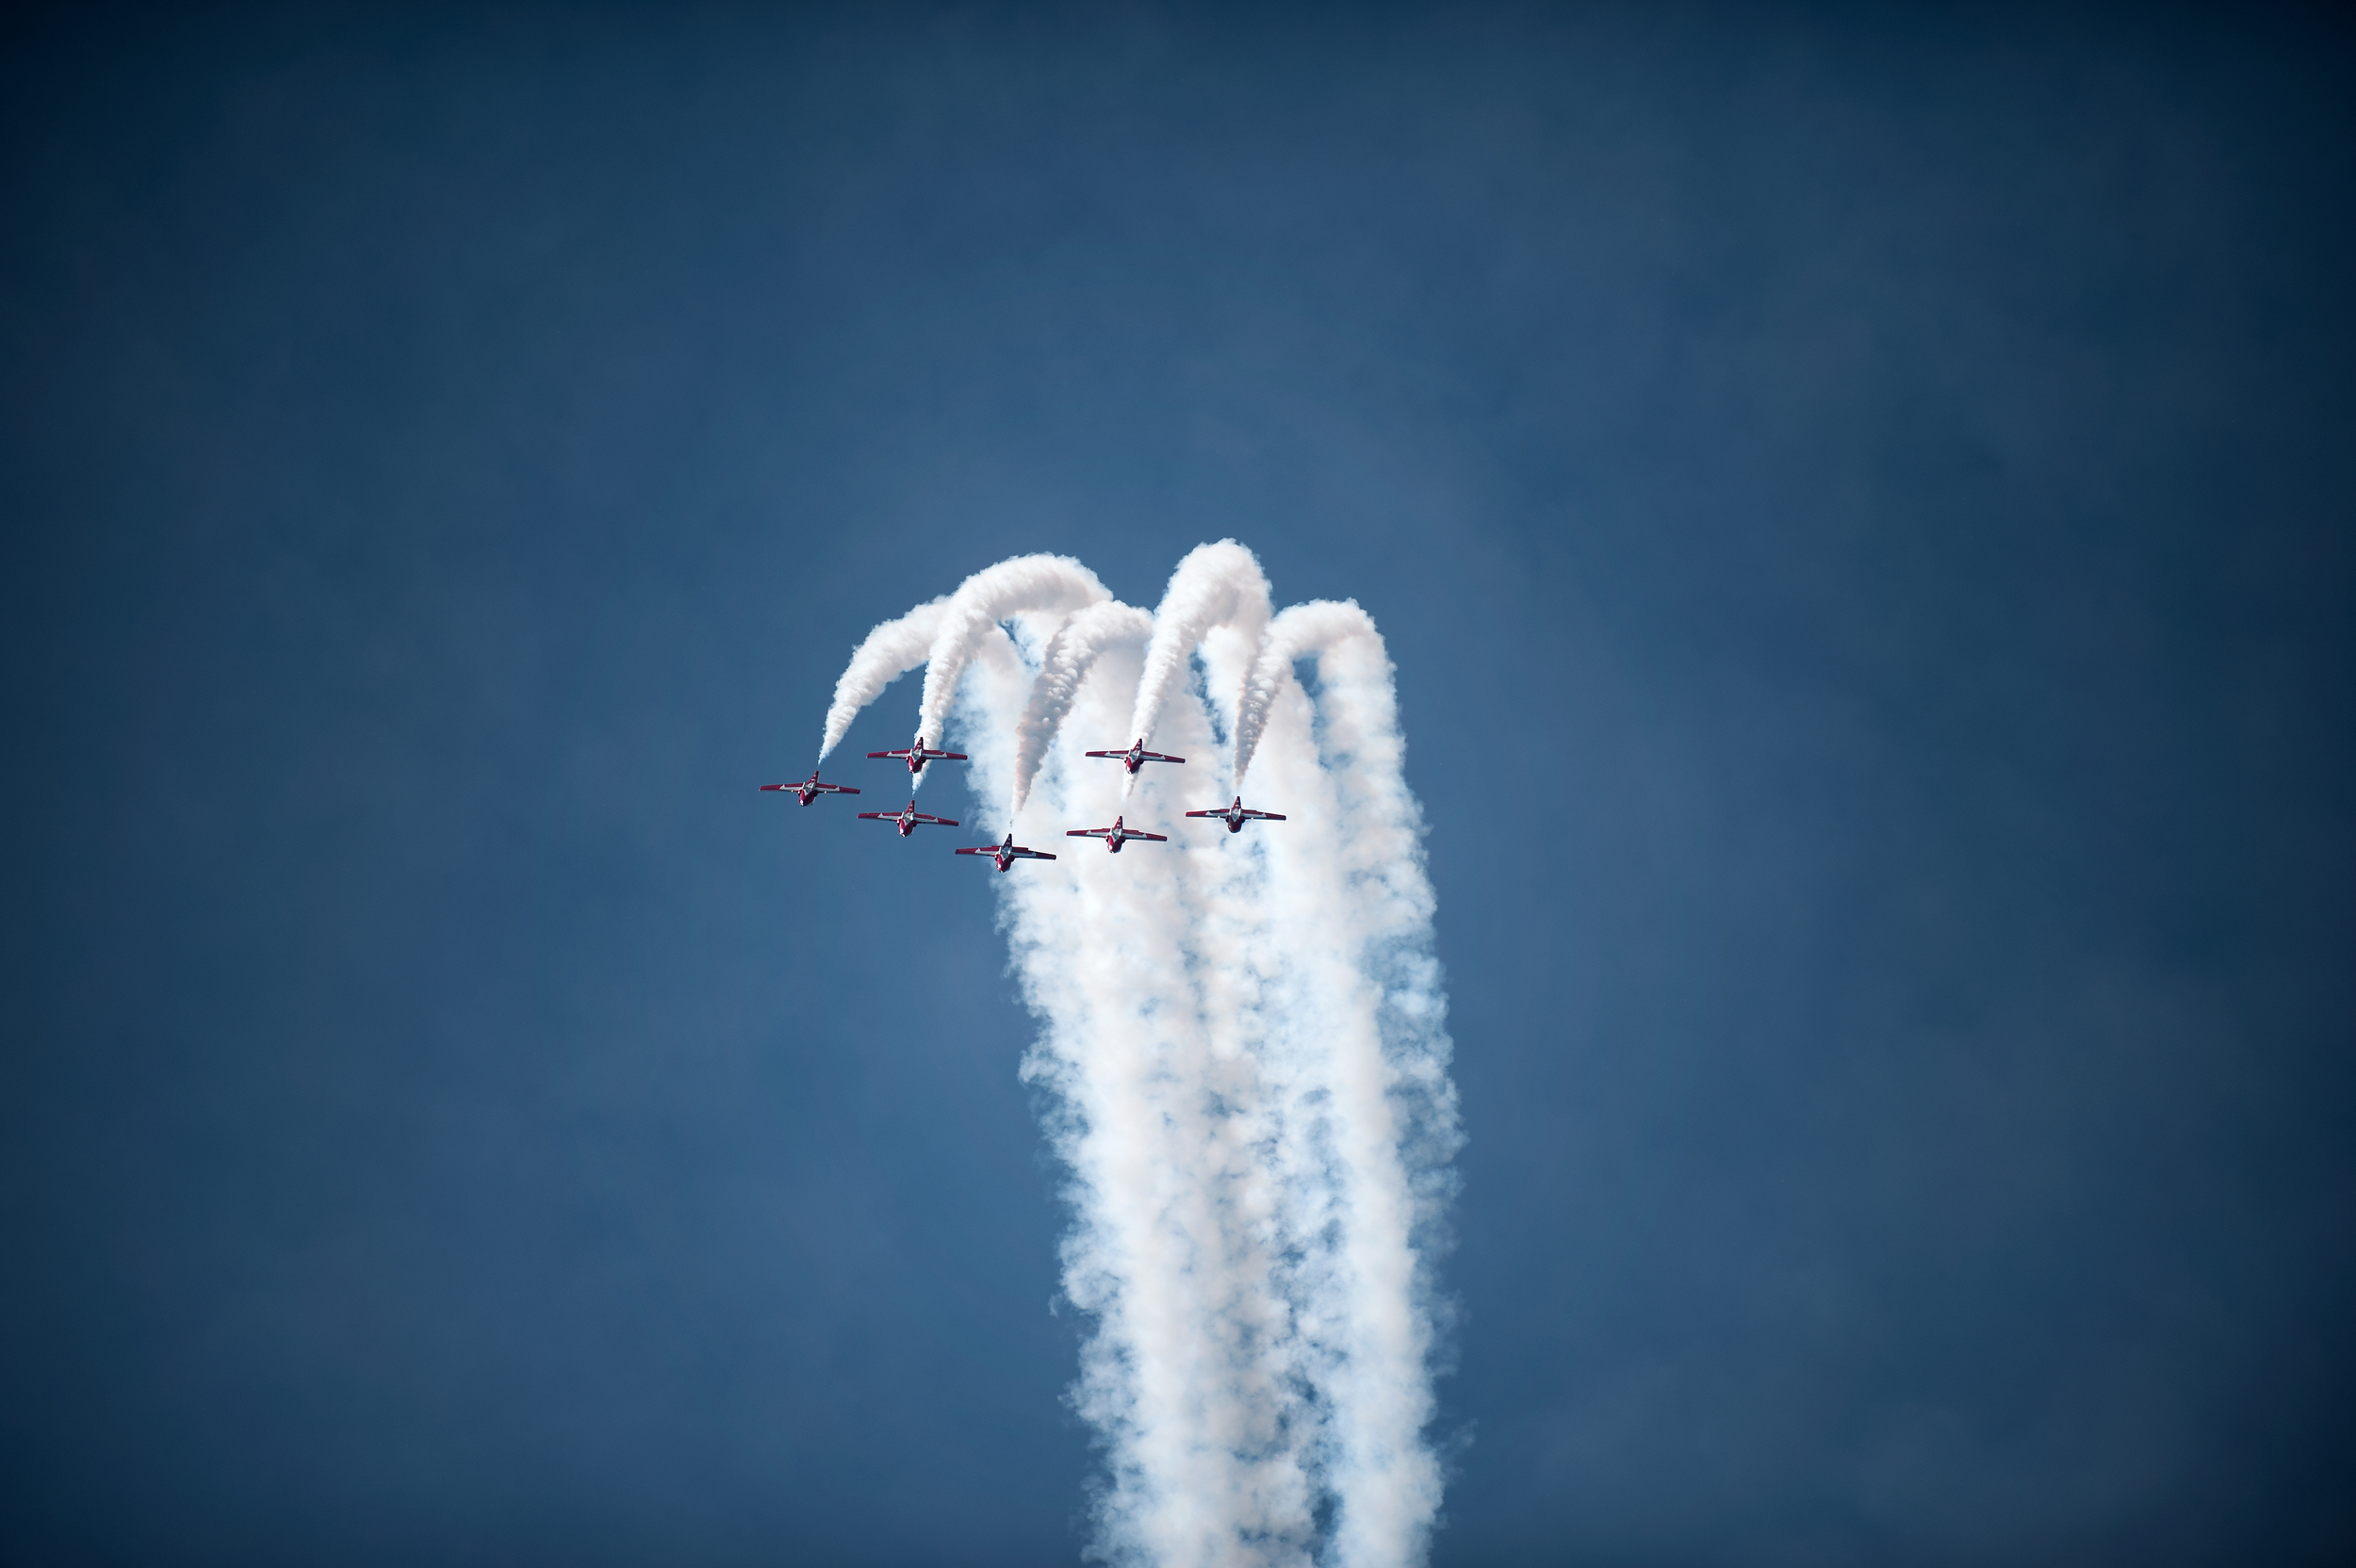 Snowbirds climb high into the sky, turn on the smoke and flip over backwards